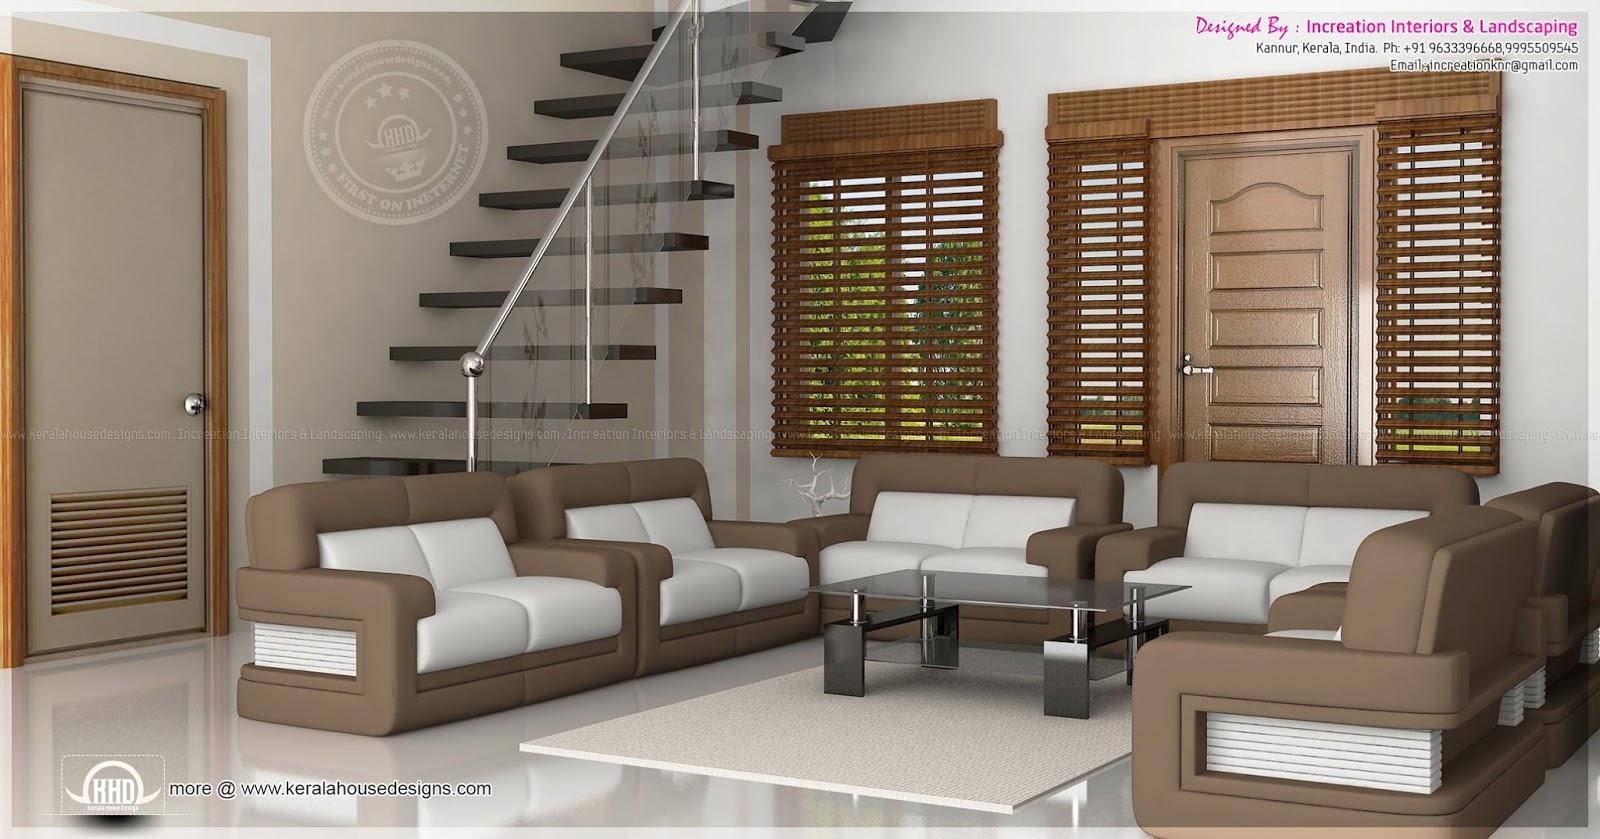 3d interiors by increation interiors kerala home design for Interior designs in kerala